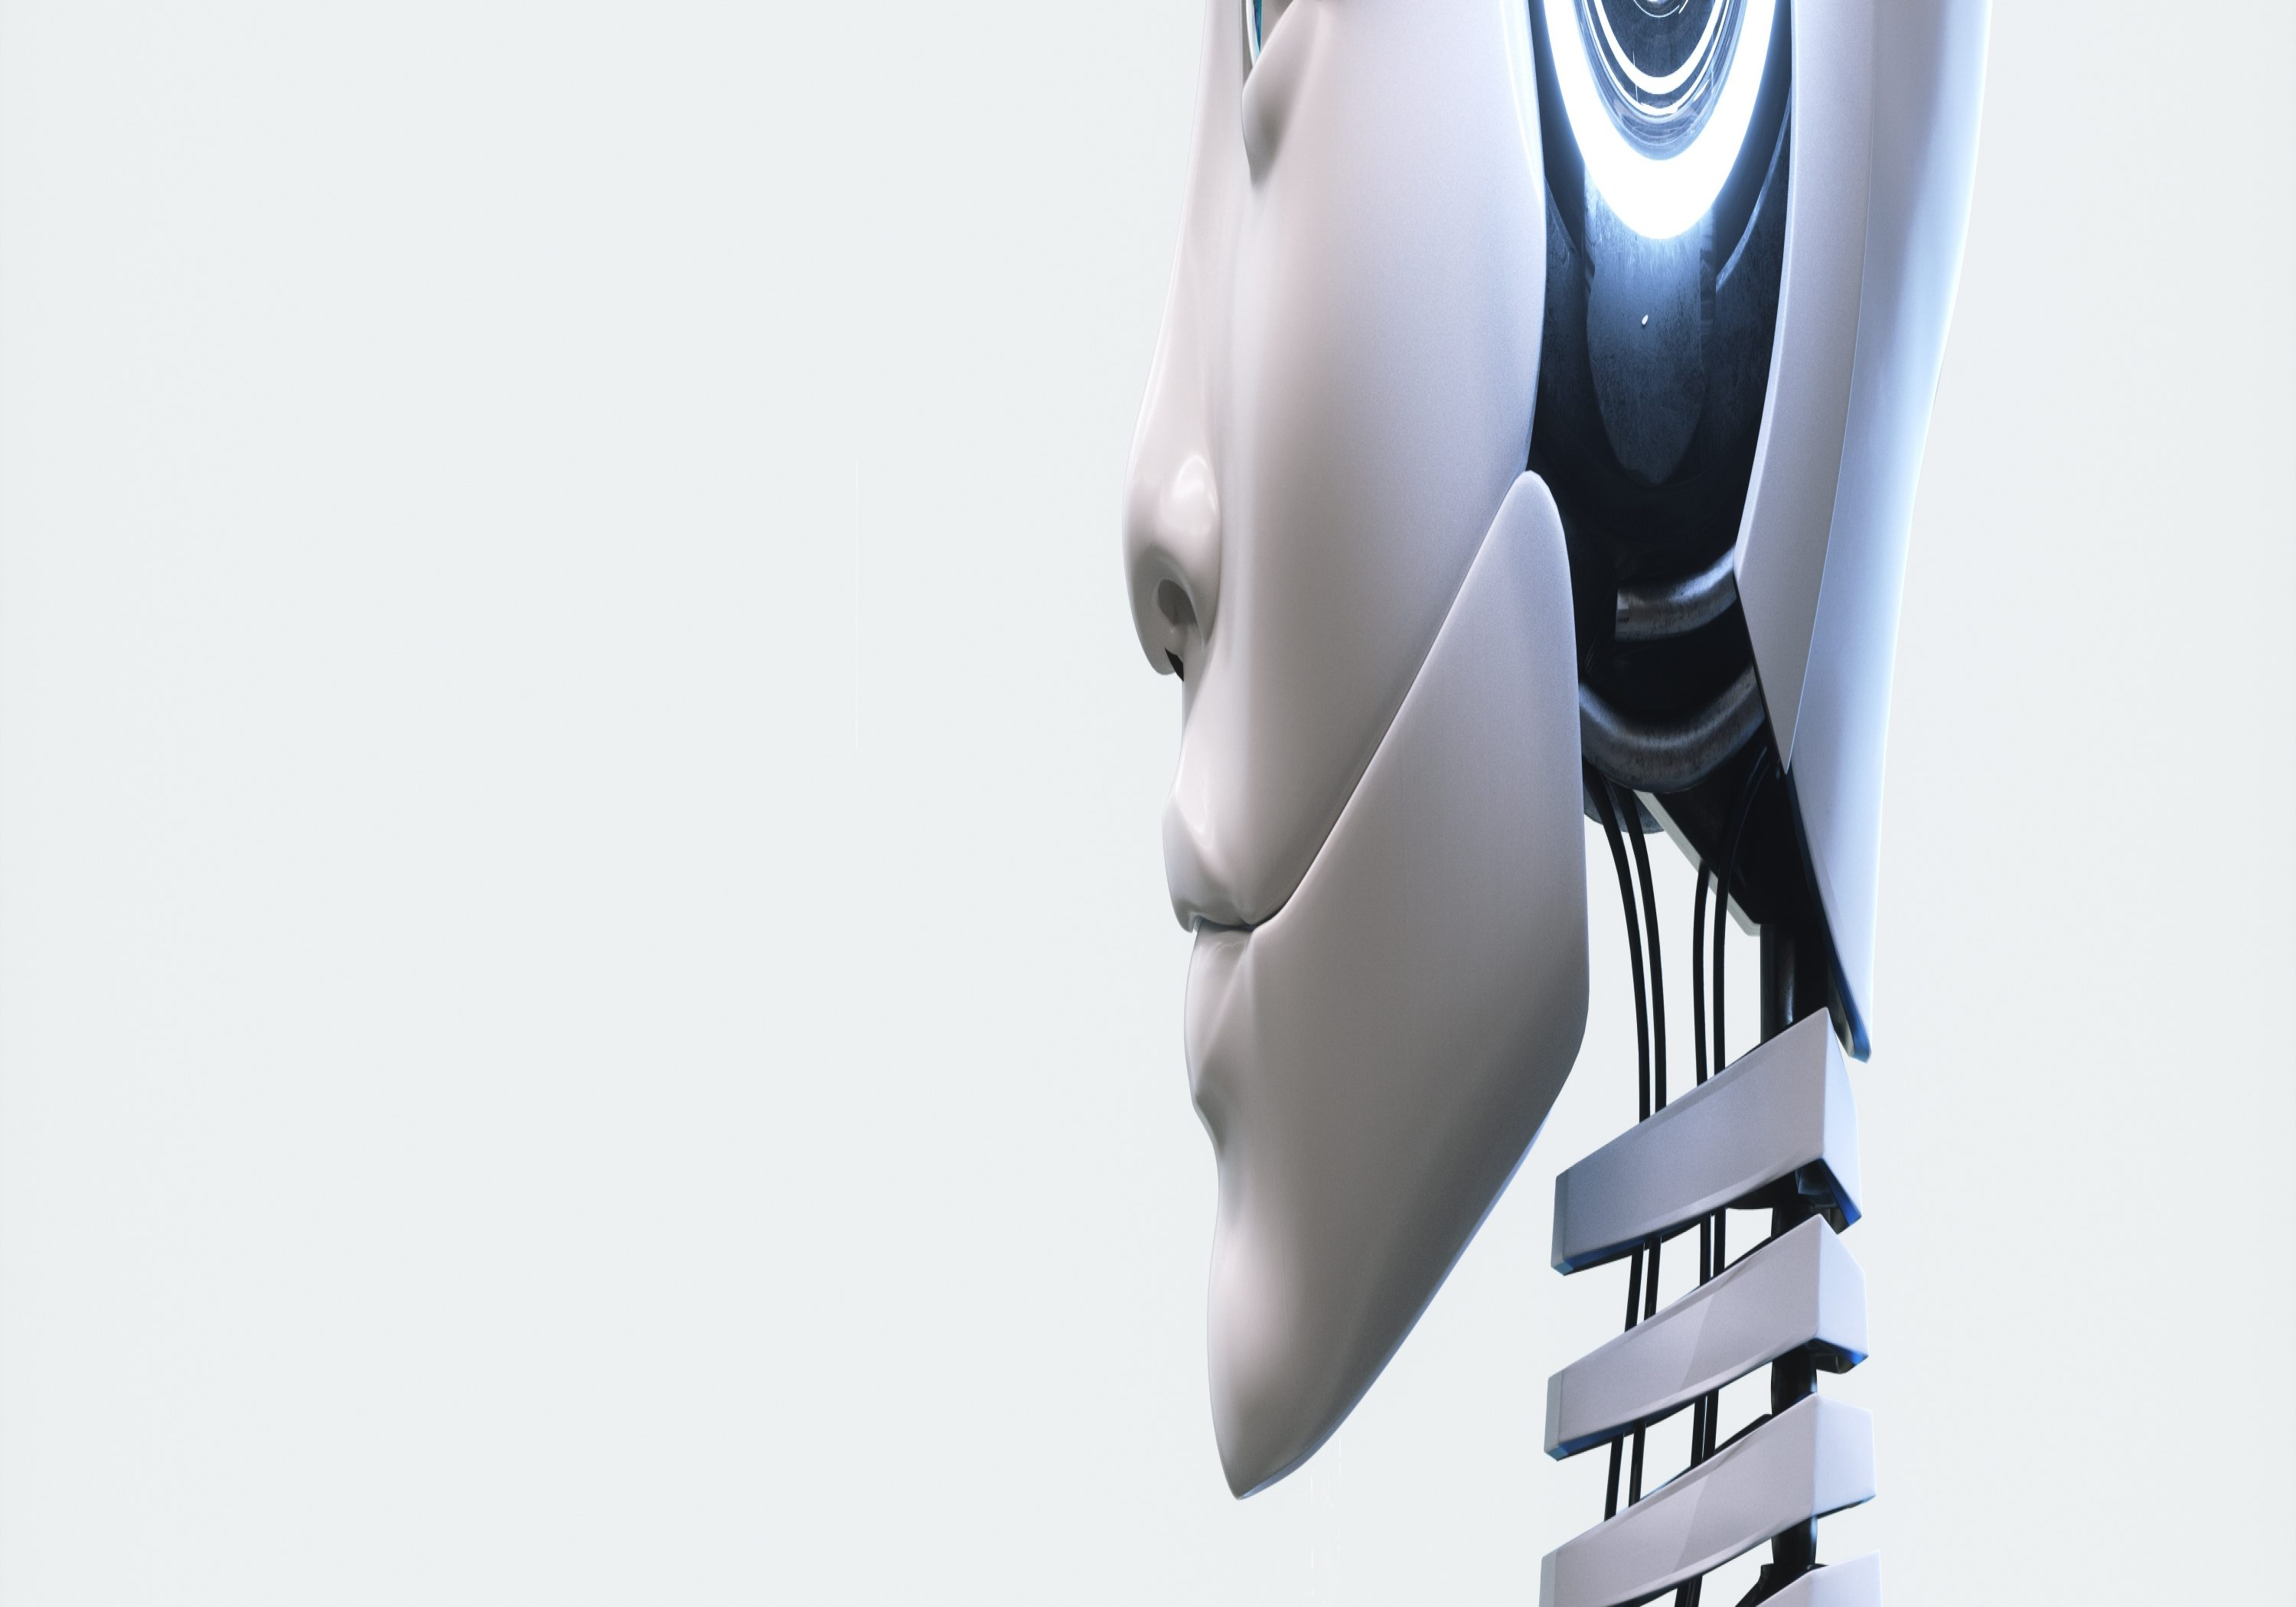 Head of a humanoid robot